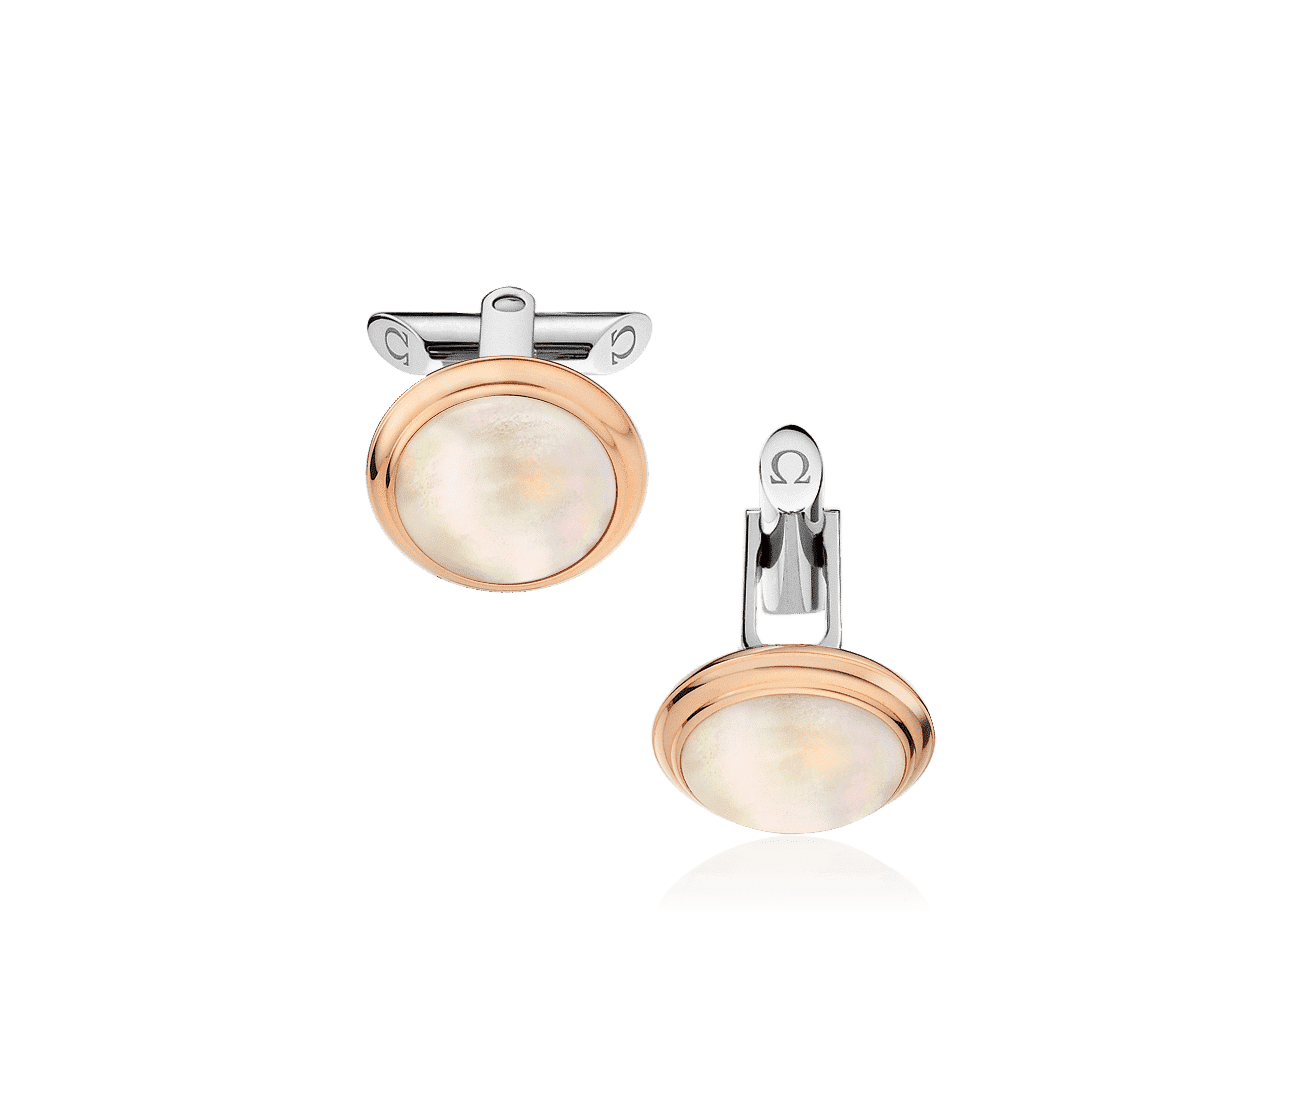 18K Rose Gold, Stainless Steel  2 Mother-of-Pearl Cabochons Cufflinks